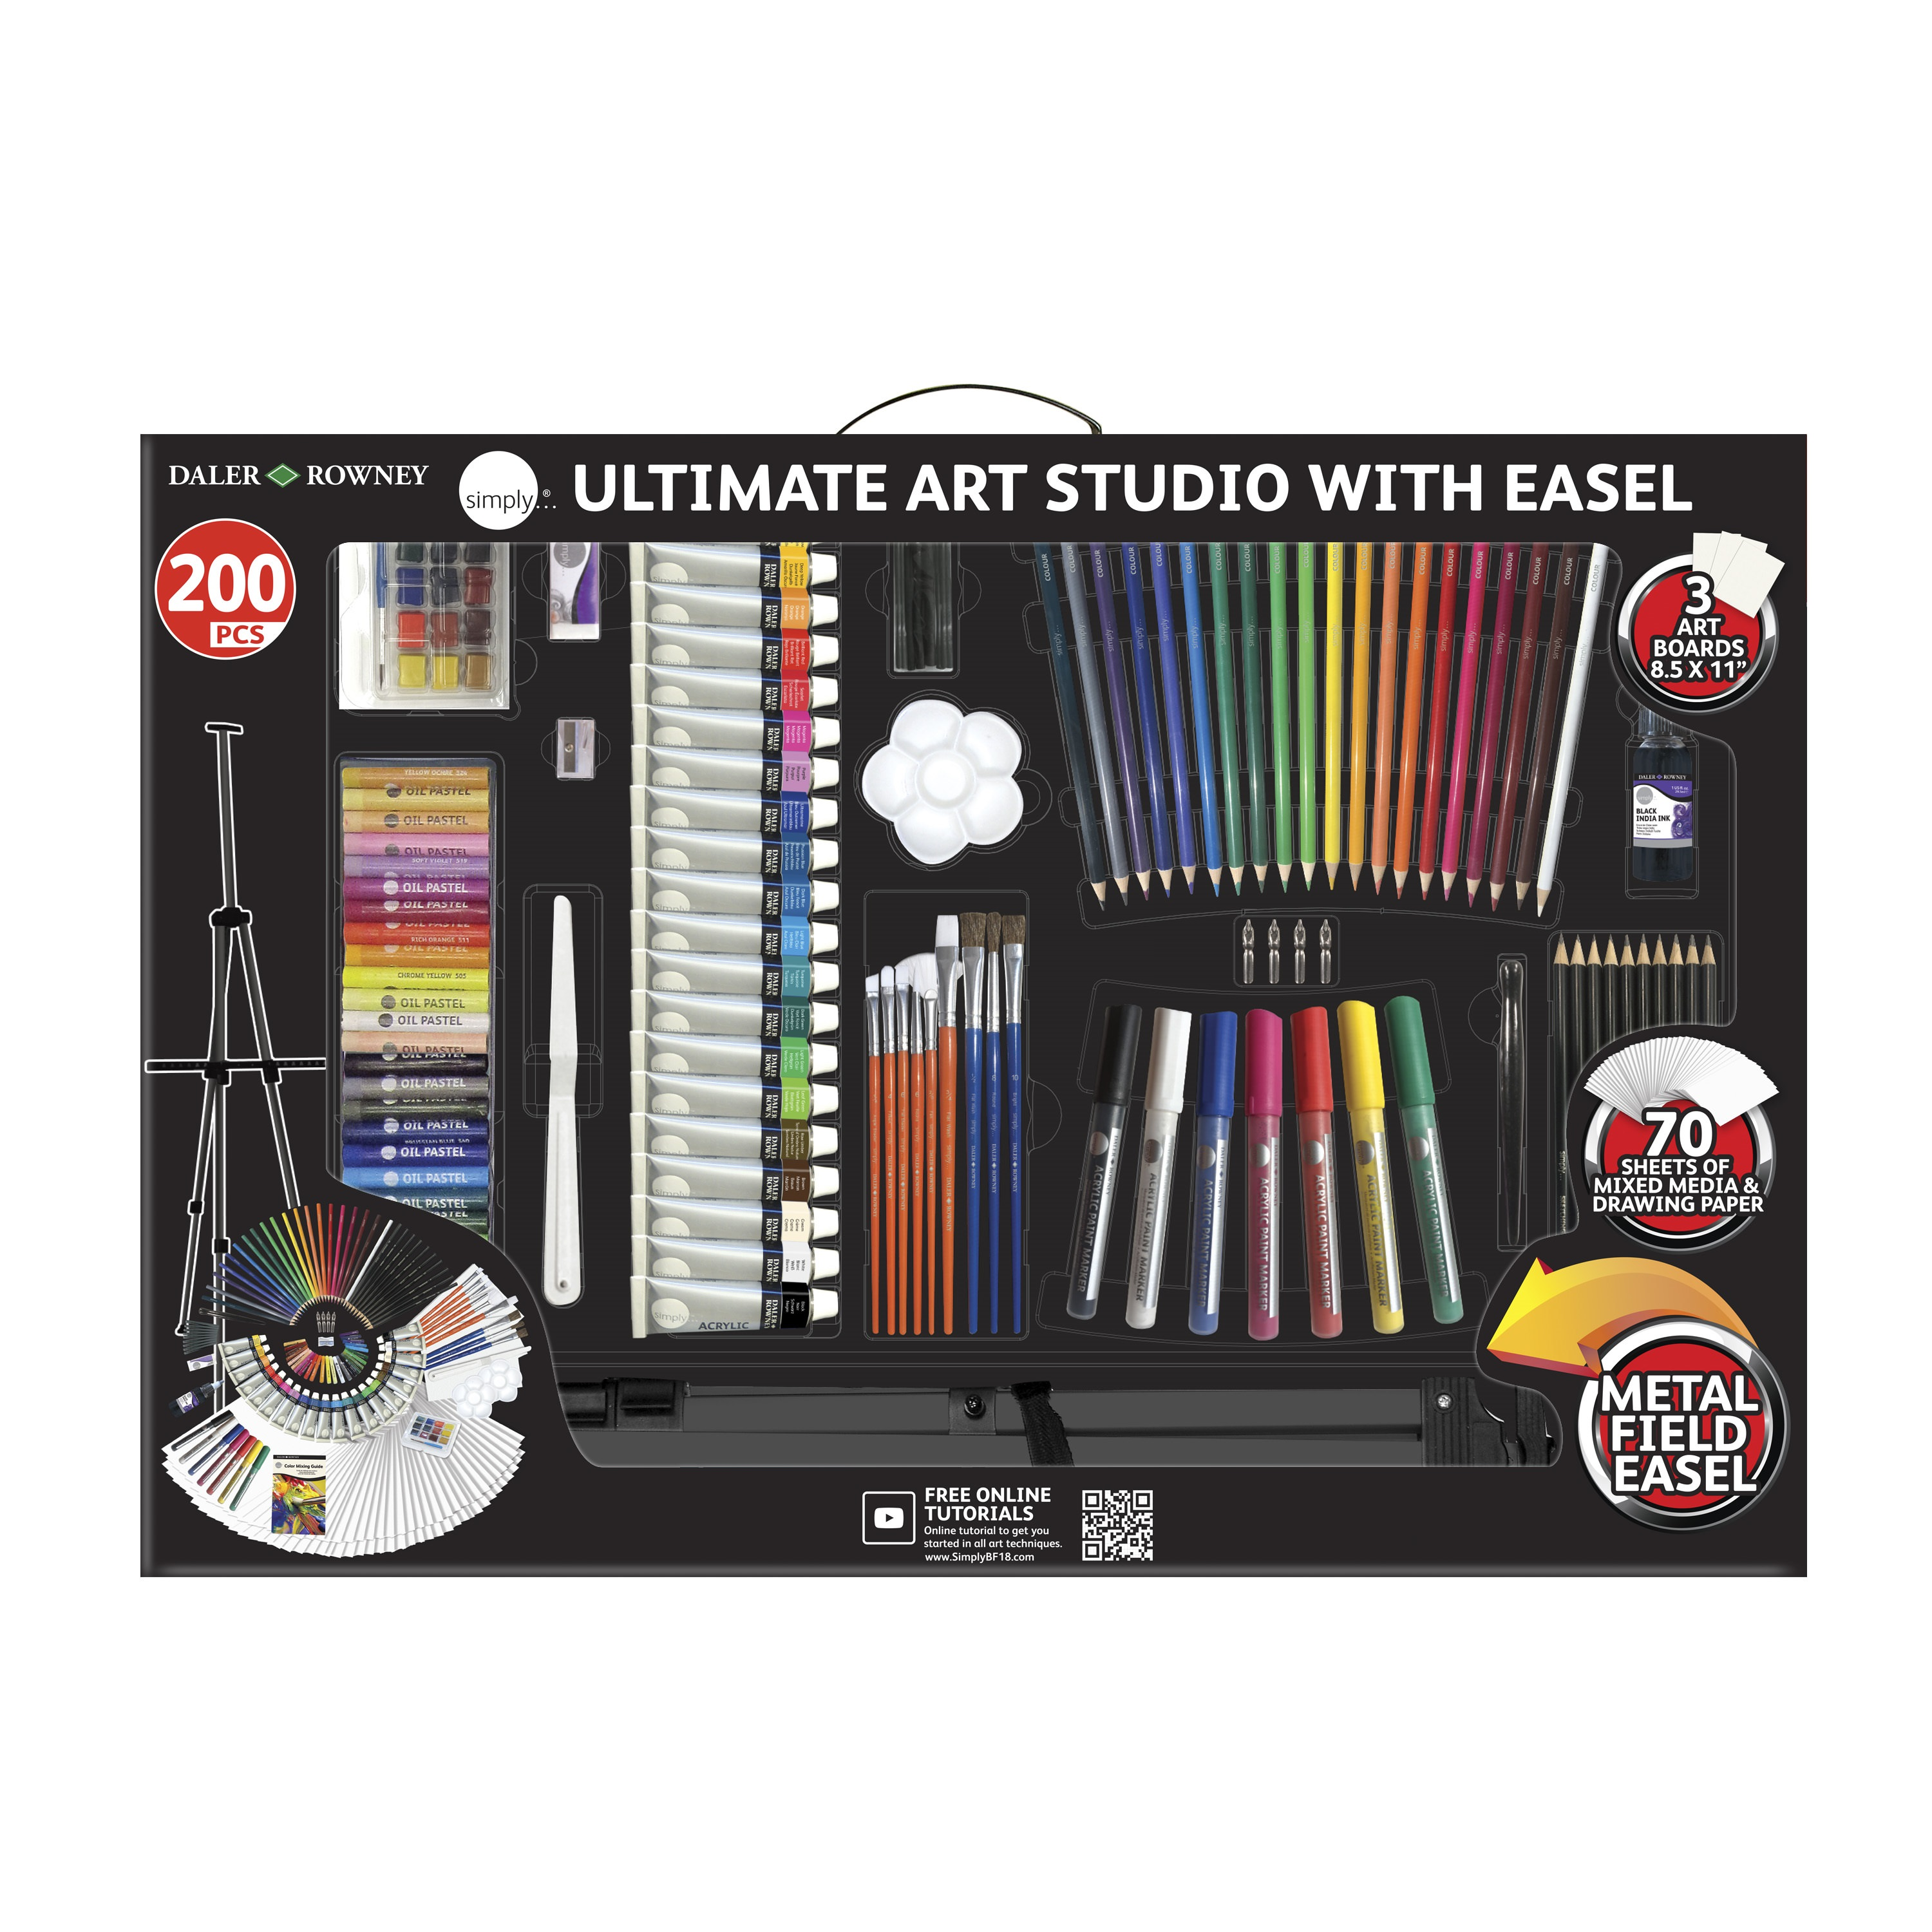 Daler Rowney 200 Piece Simply Ultimate Studio Art Set Art Kit With Easel